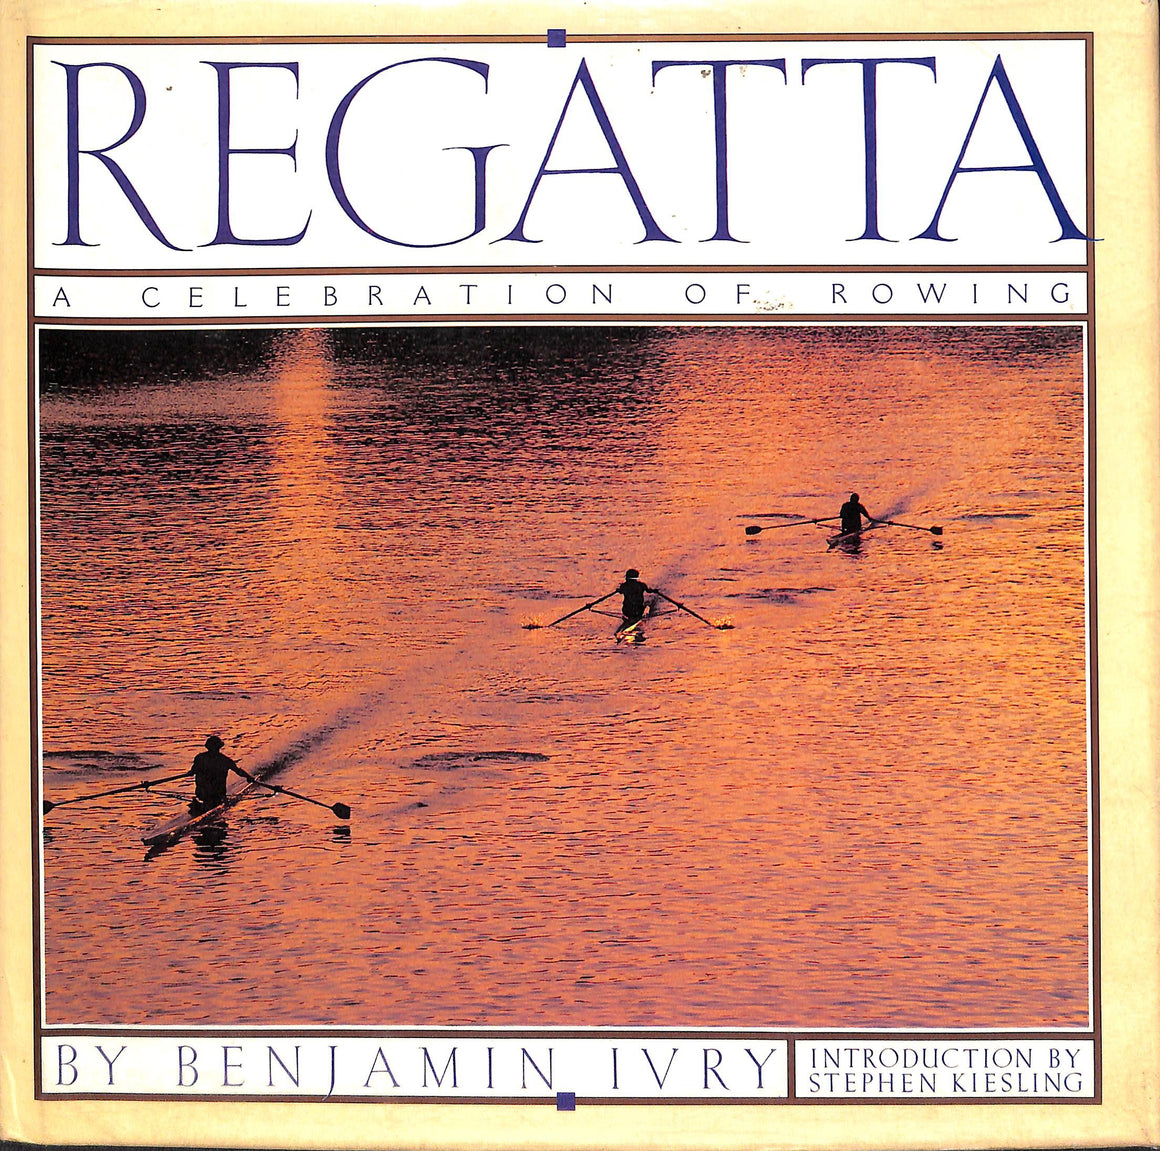 Regatta: A Celebration of Rowing by Benjamin Ivry